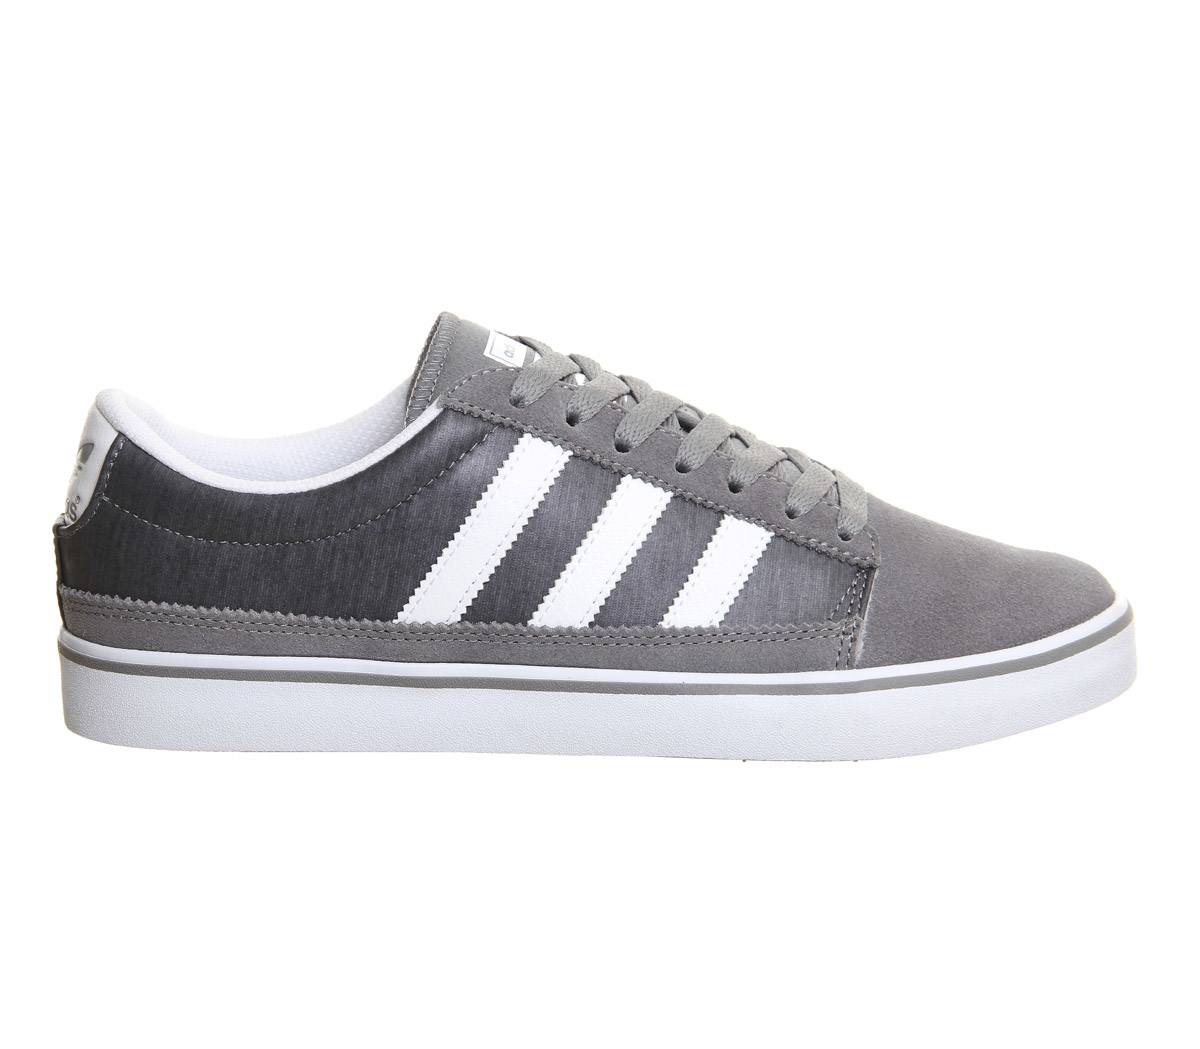 low priced d95a4 2009e Lyst - adidas Originals Rayado Low in Gray for Men